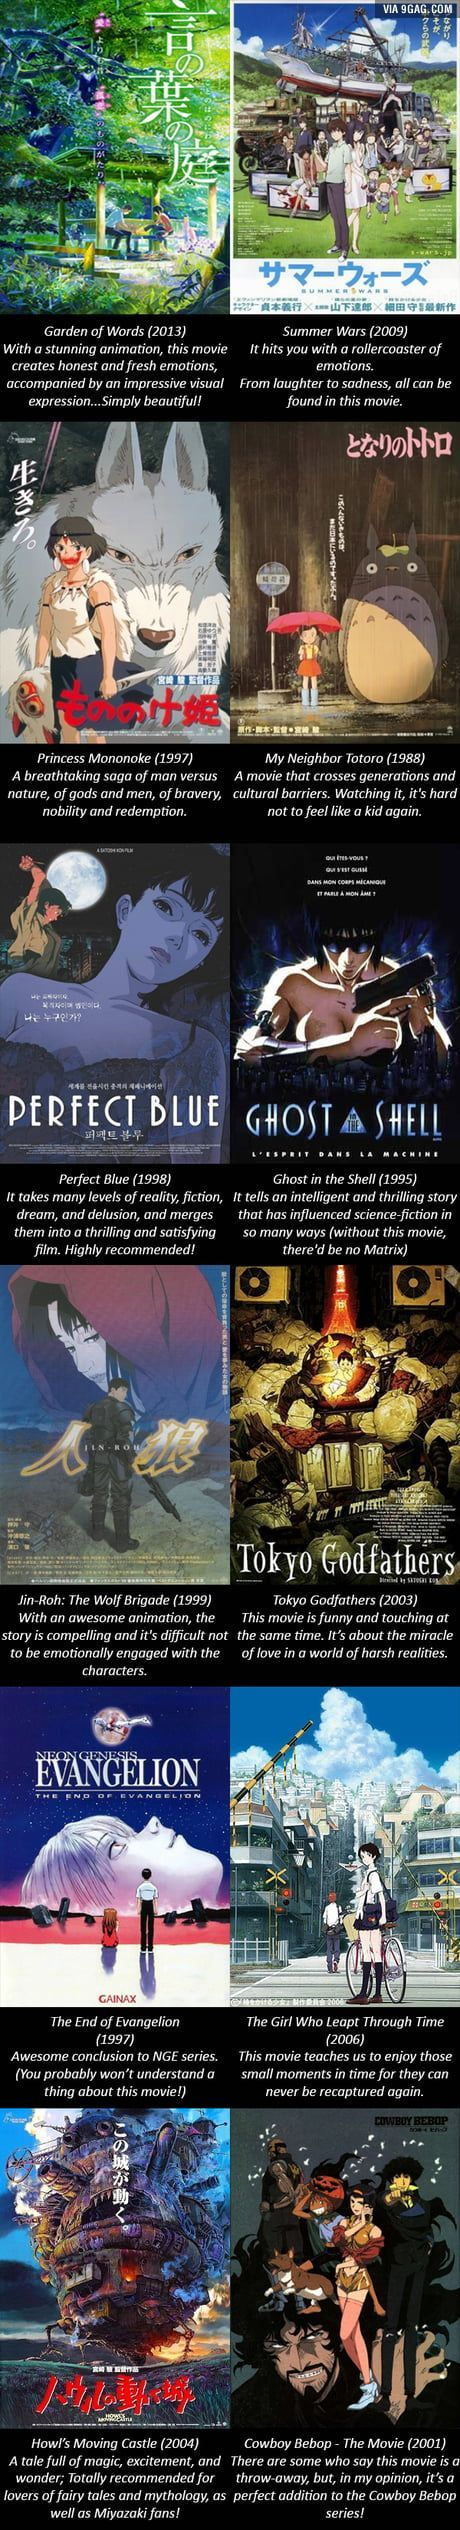 Here's a list of my favorite anime movies that I